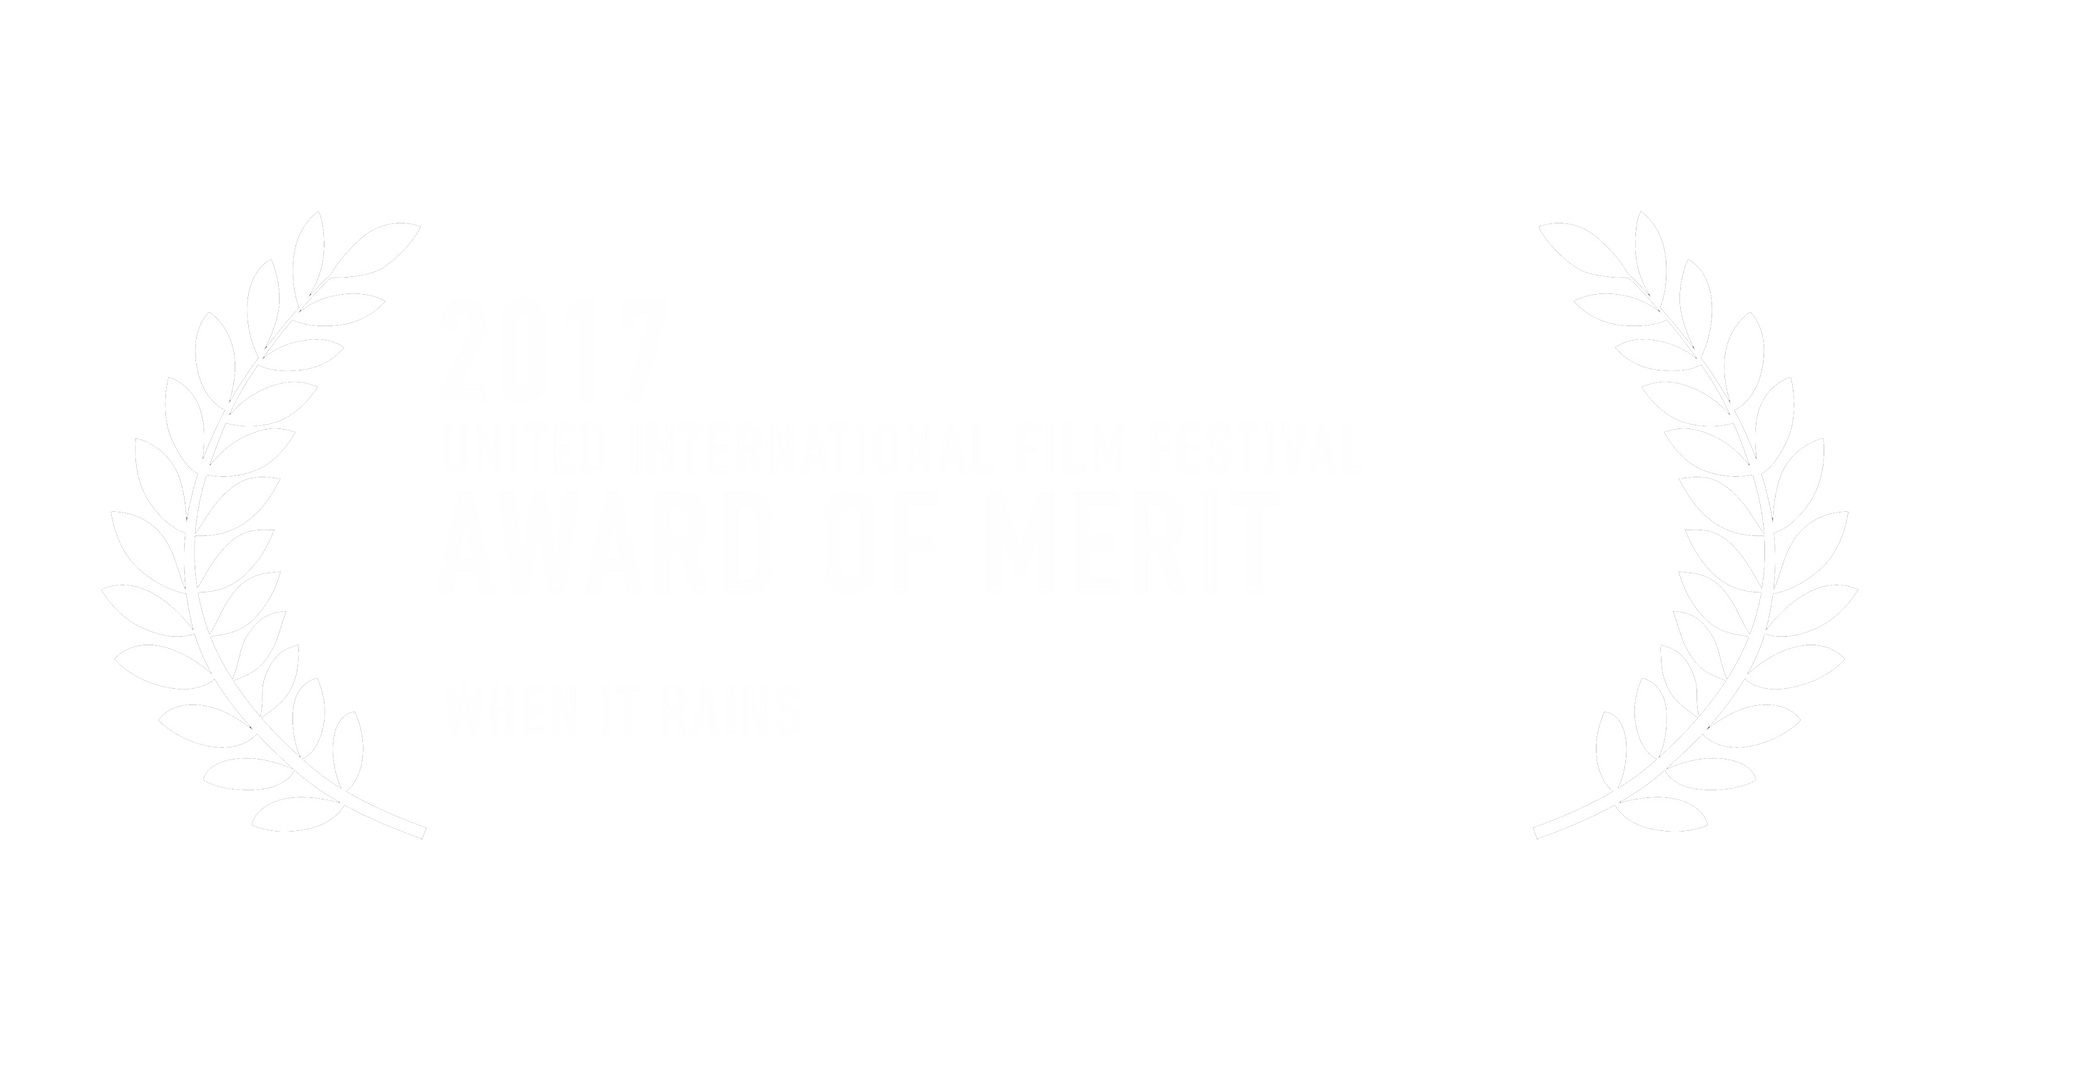 UIFF_AWARD OF MERIT.png